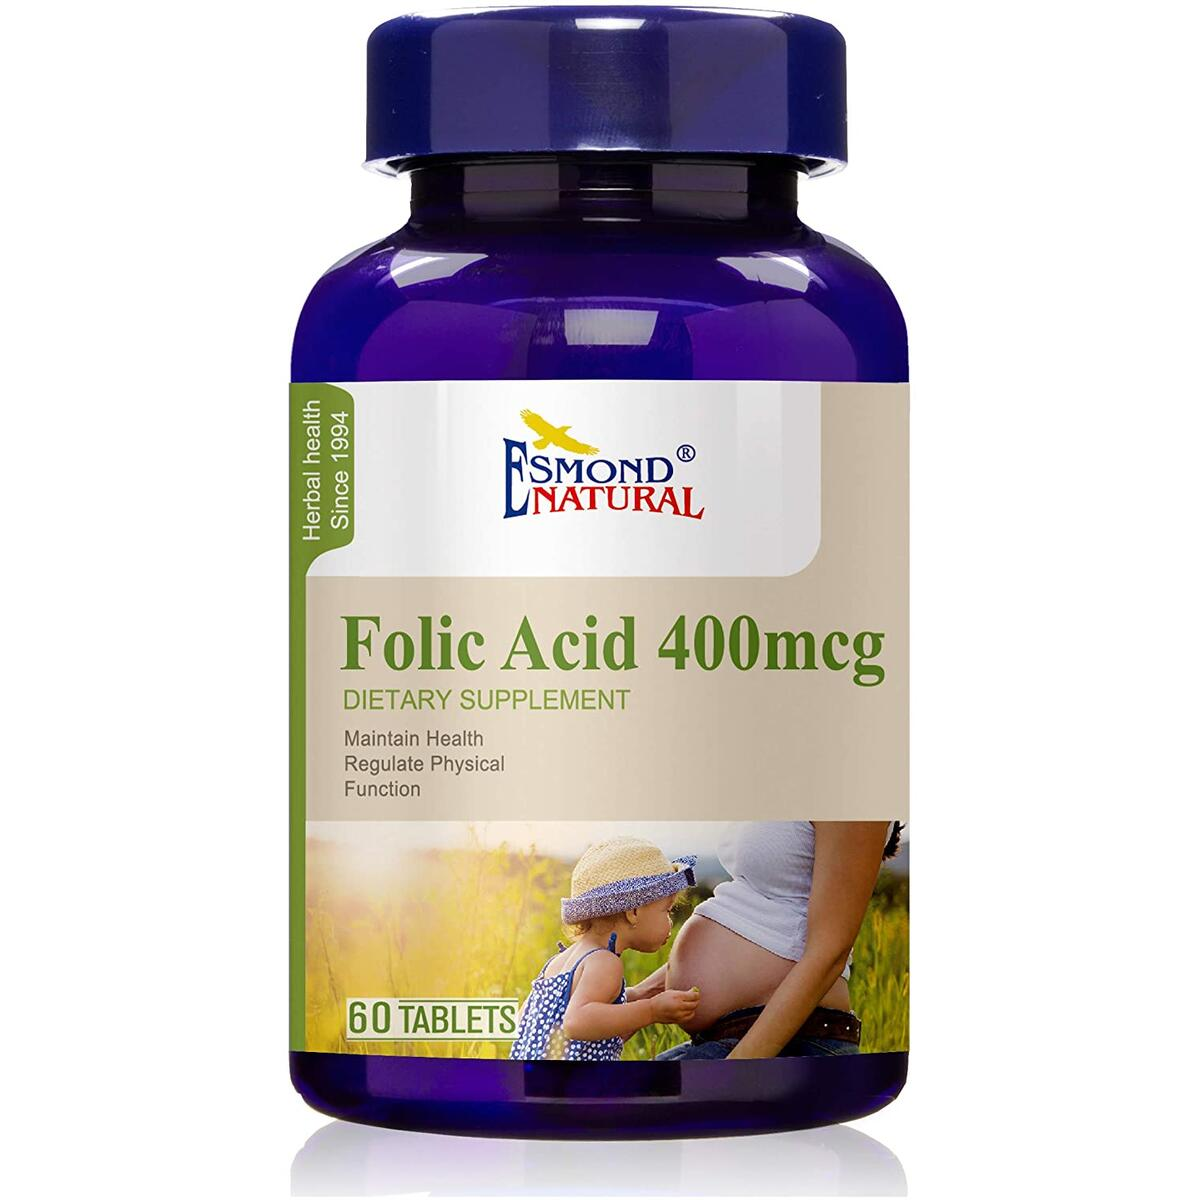 (5 Count, 25% Off) Esmond Natural: Folic Acid 400mcg (Pregnancy Support, Maintain Health Functions), GMP, Natural Product Assn Certified, Made in USA-400mcg, 300 Tablets